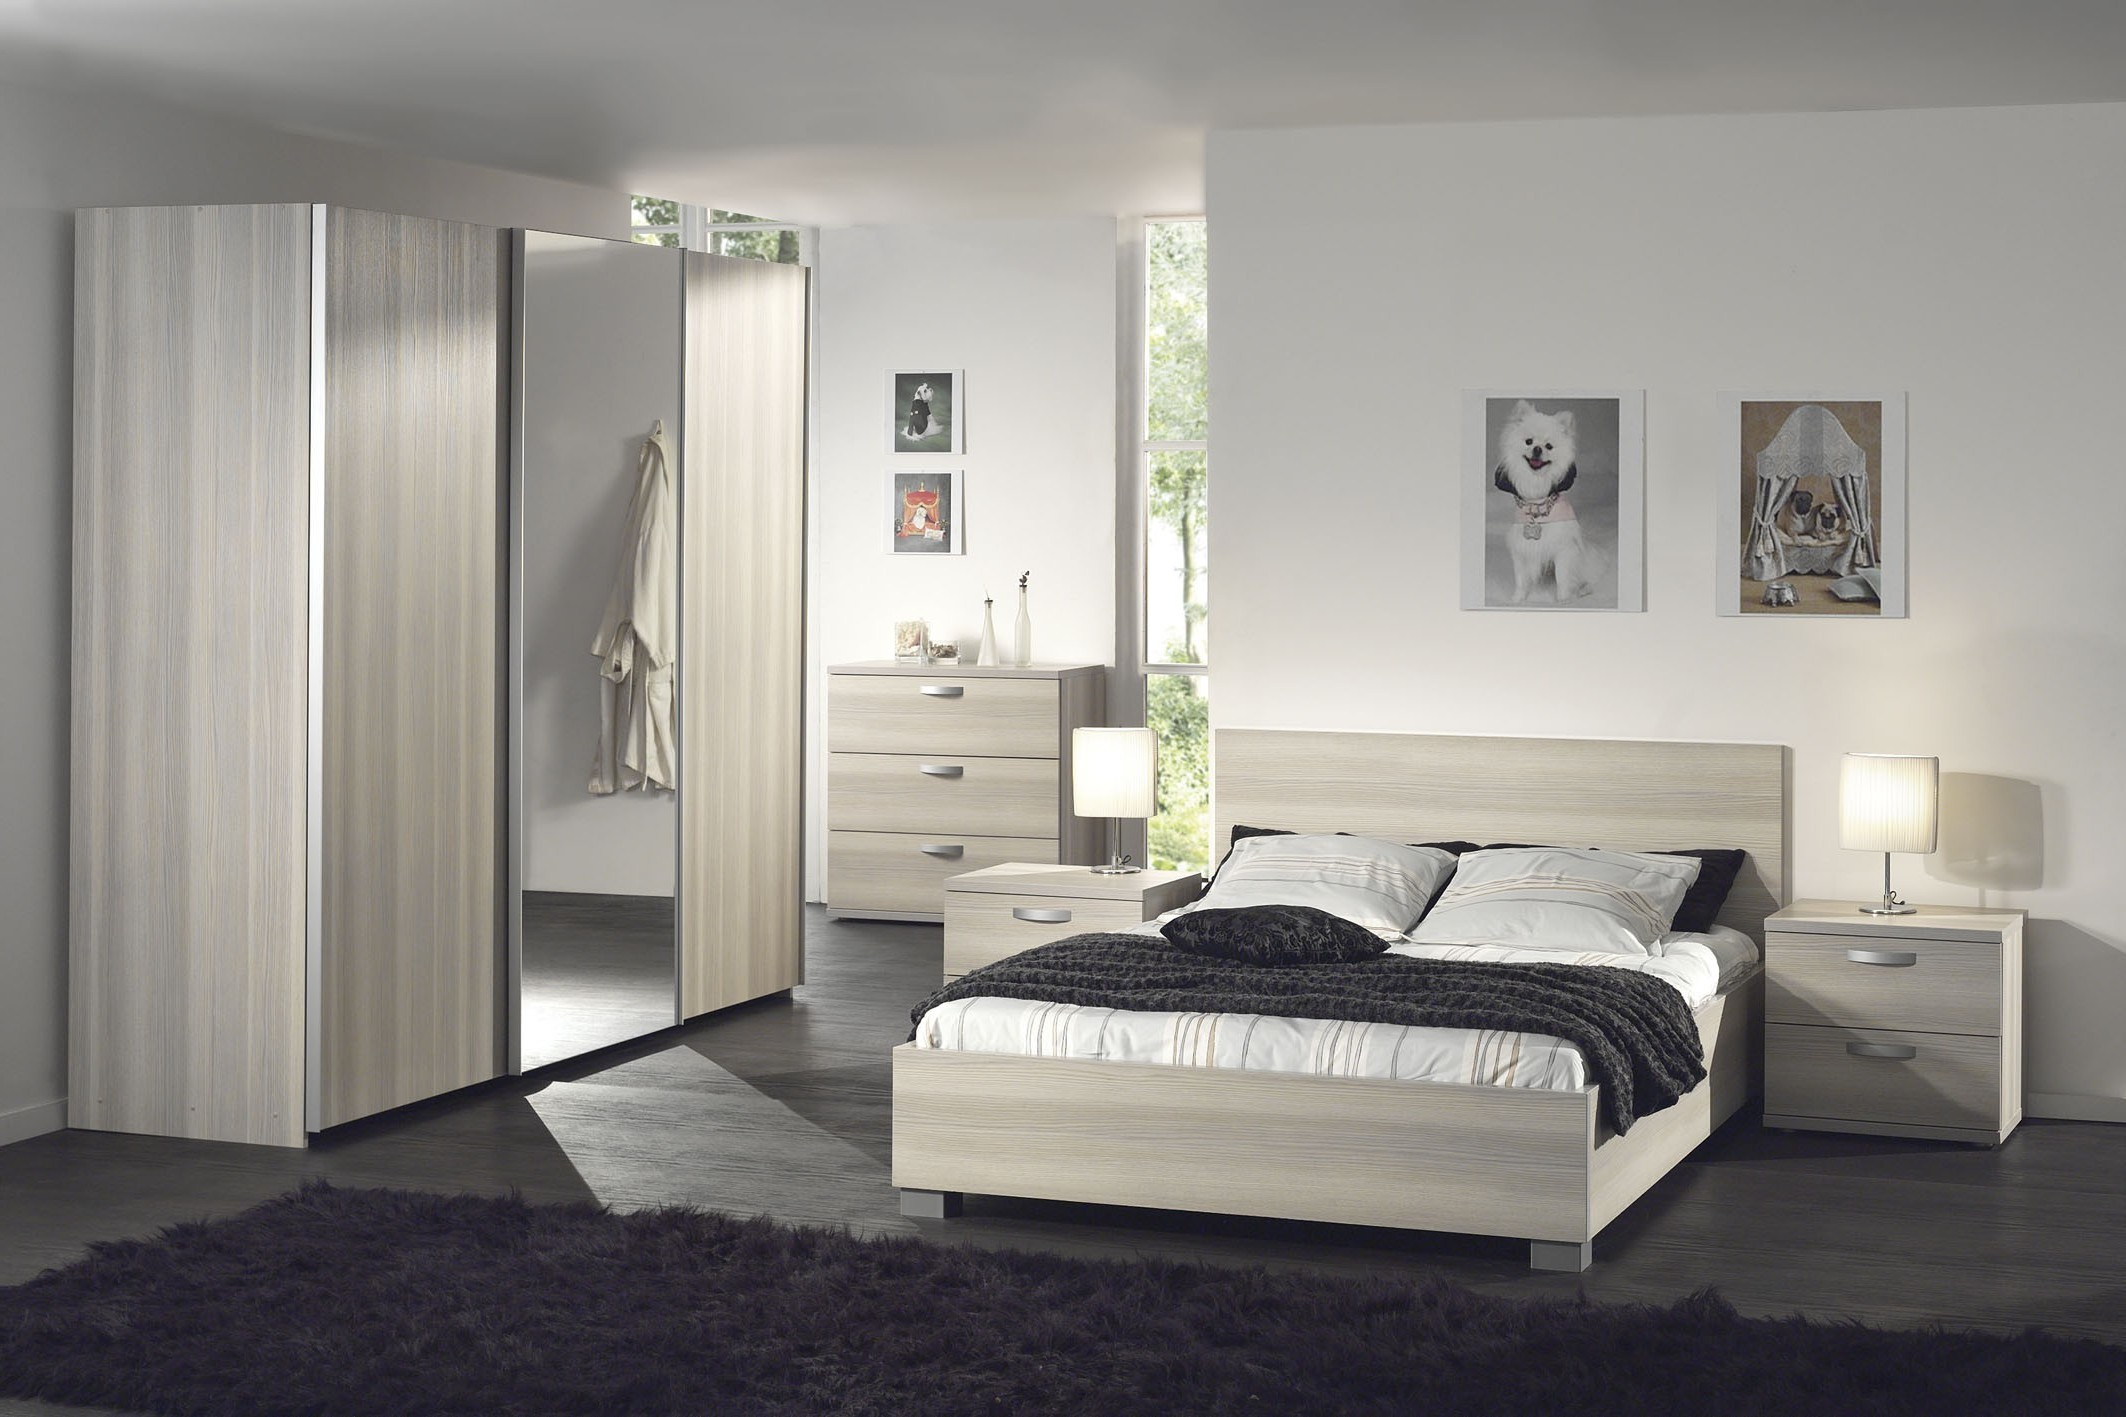 chambre coucher adulte ikea chambre id es de d coration de maison gvnzoz6lqa. Black Bedroom Furniture Sets. Home Design Ideas